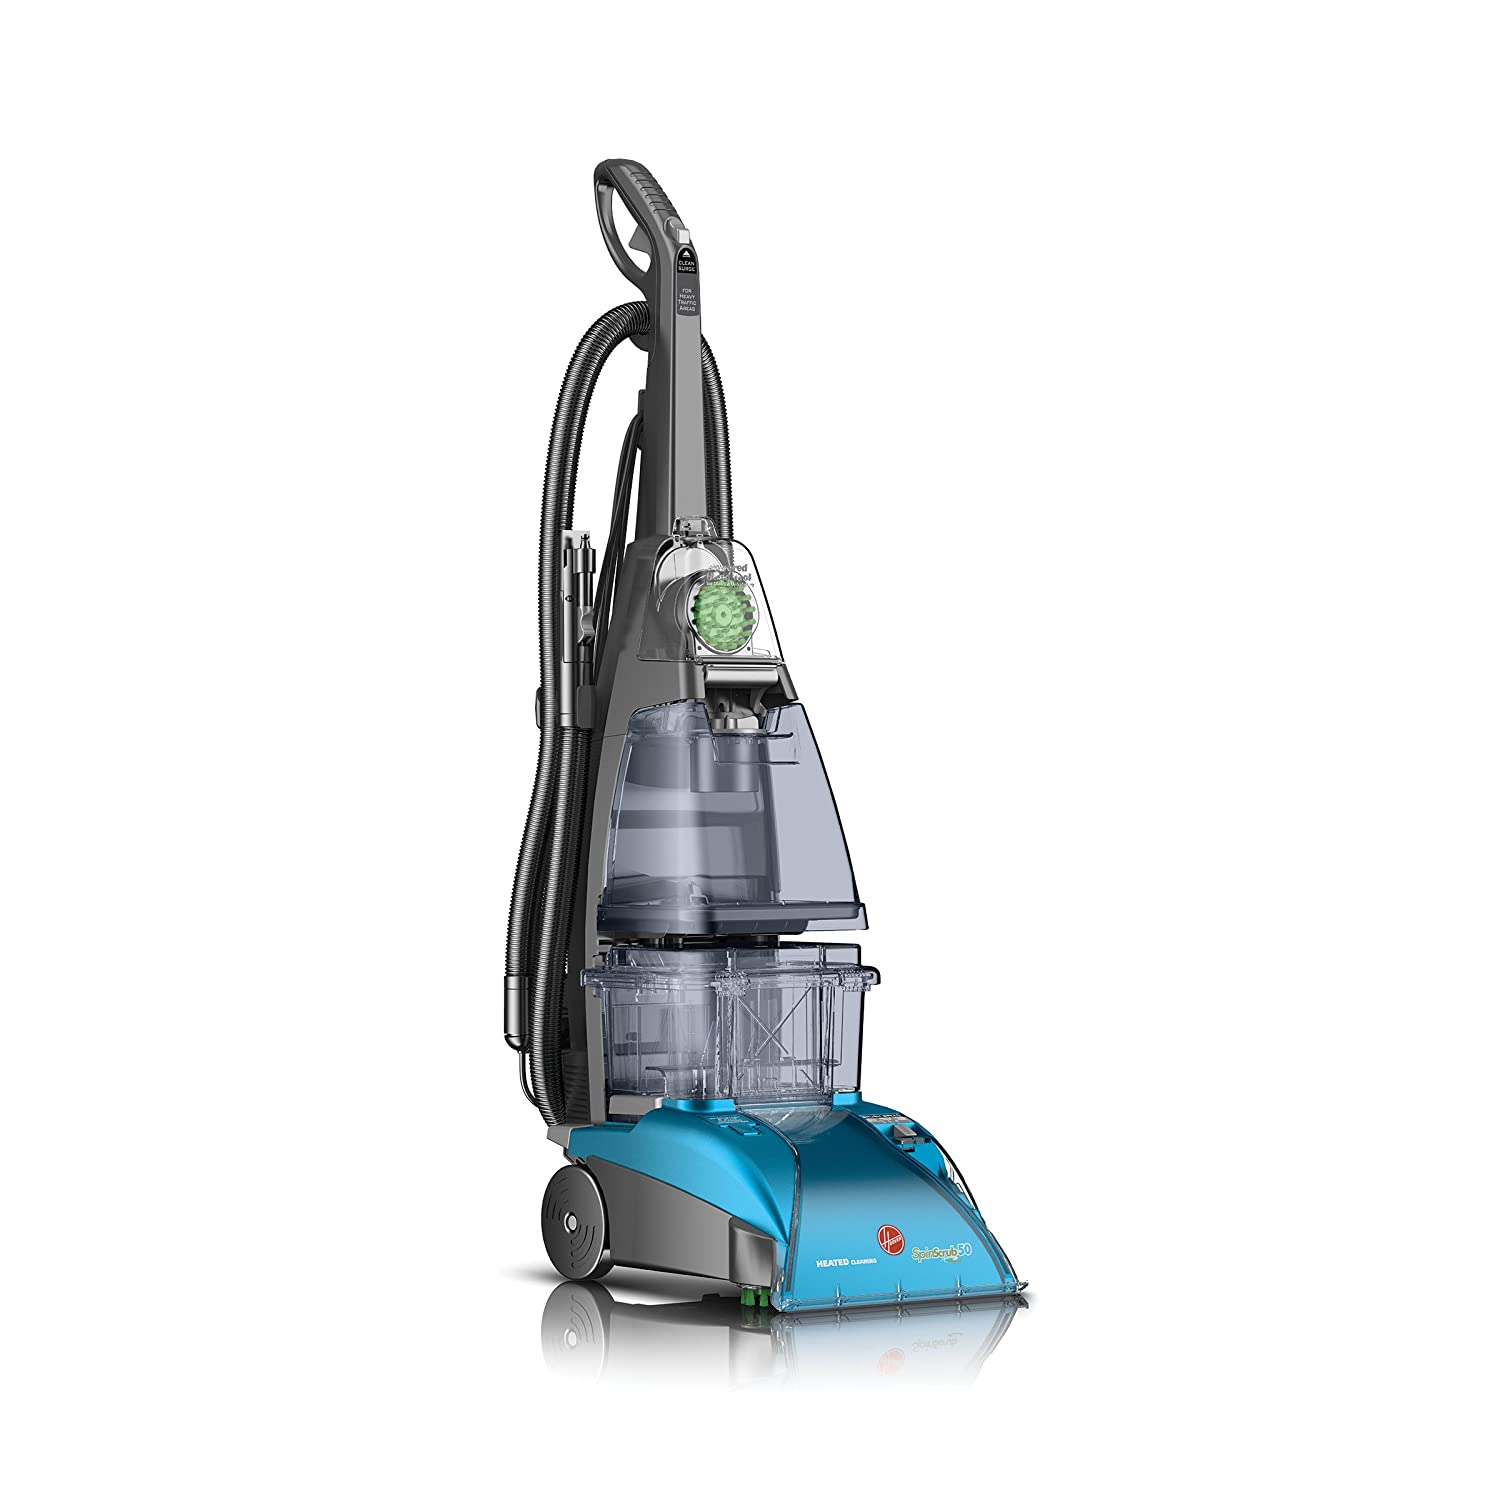 hoover carpet cleaner steamvac with clean surge carpet cleaner machine f5914900 u2013 best buy